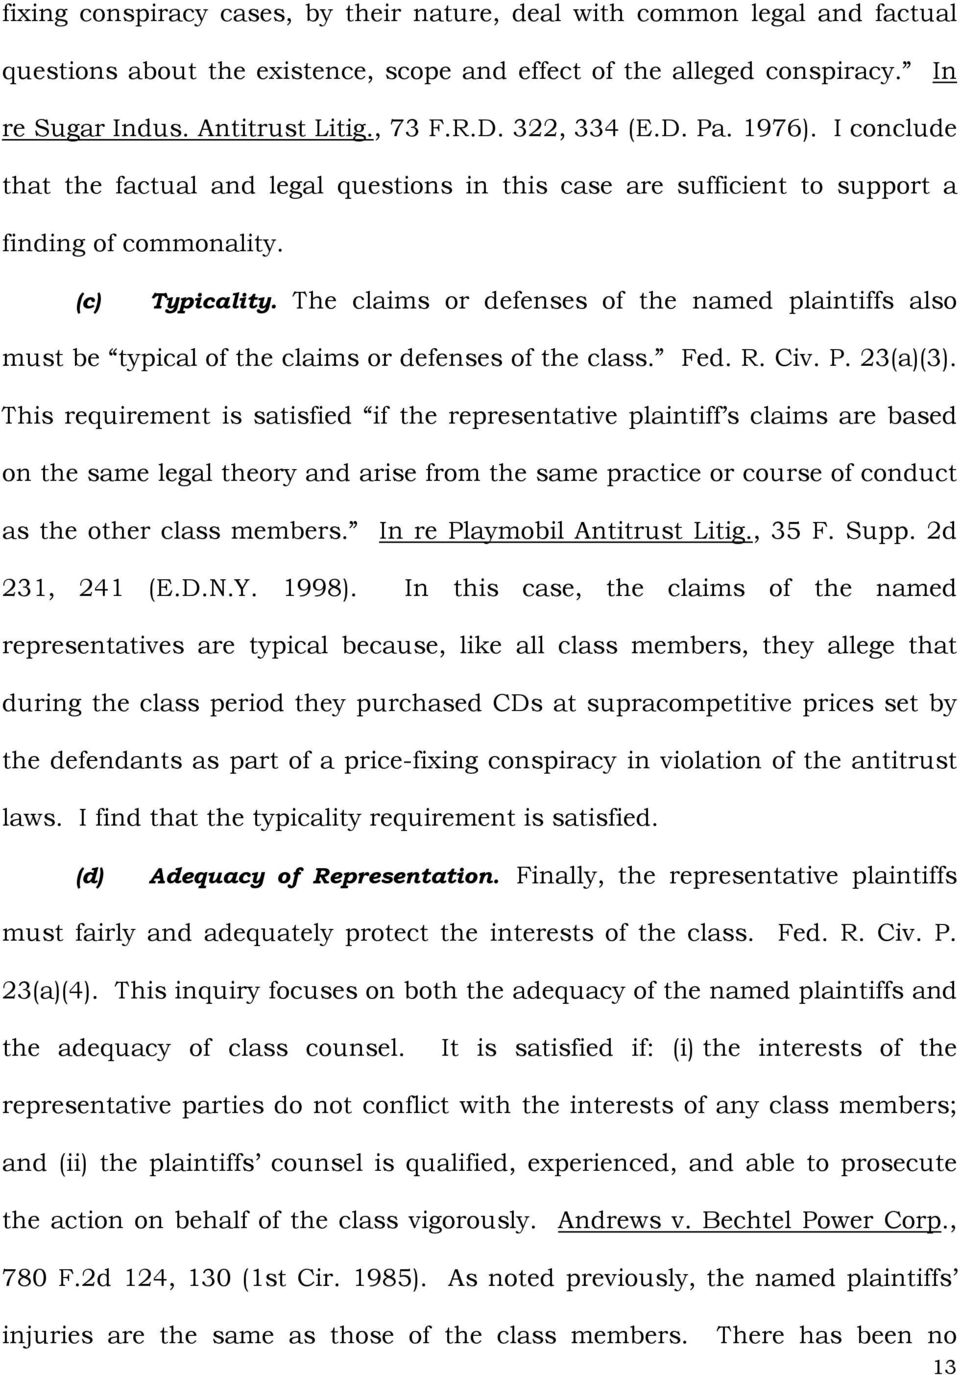 The claims or defenses of the named plaintiffs also must be typical of the claims or defenses of the class. Fed. R. Civ. P. 23(a)(3).